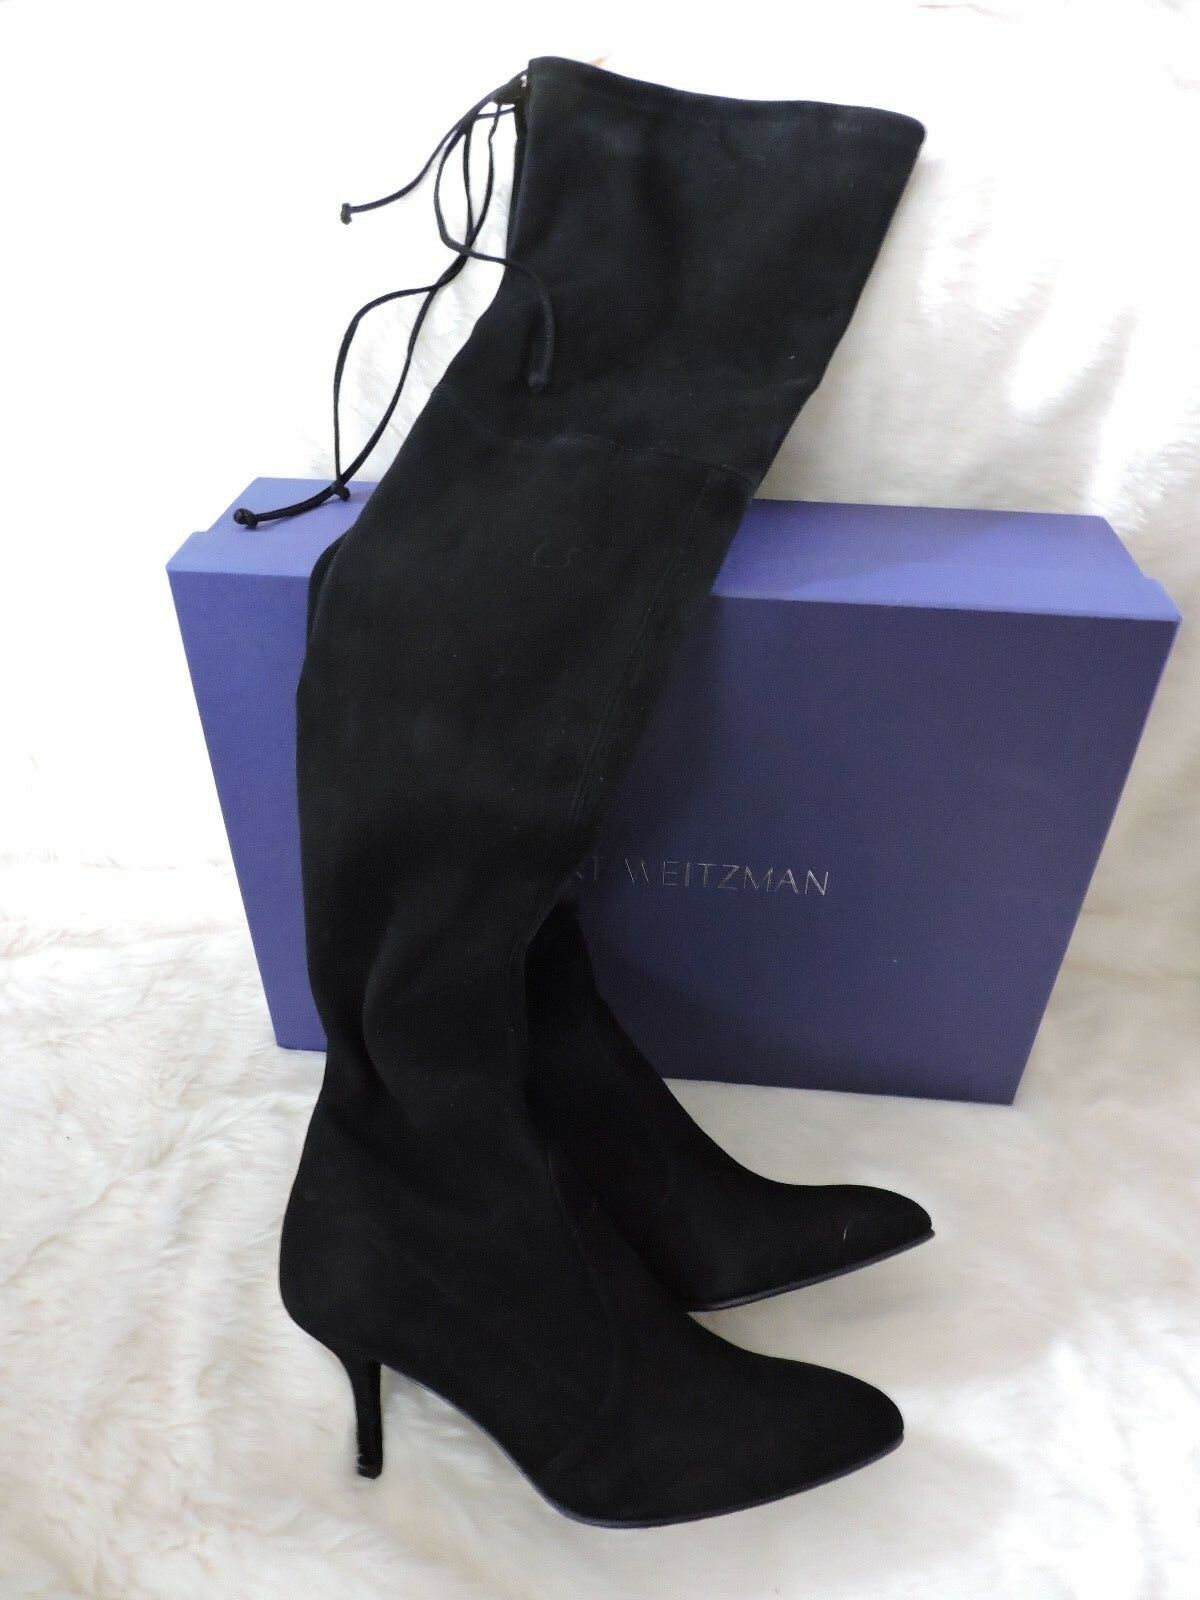 NEW  798 STUART WEITZMAN TIEMODEL BLACK OVER THE KNEE OTK SUEDE STRETCH BOOT 7.5